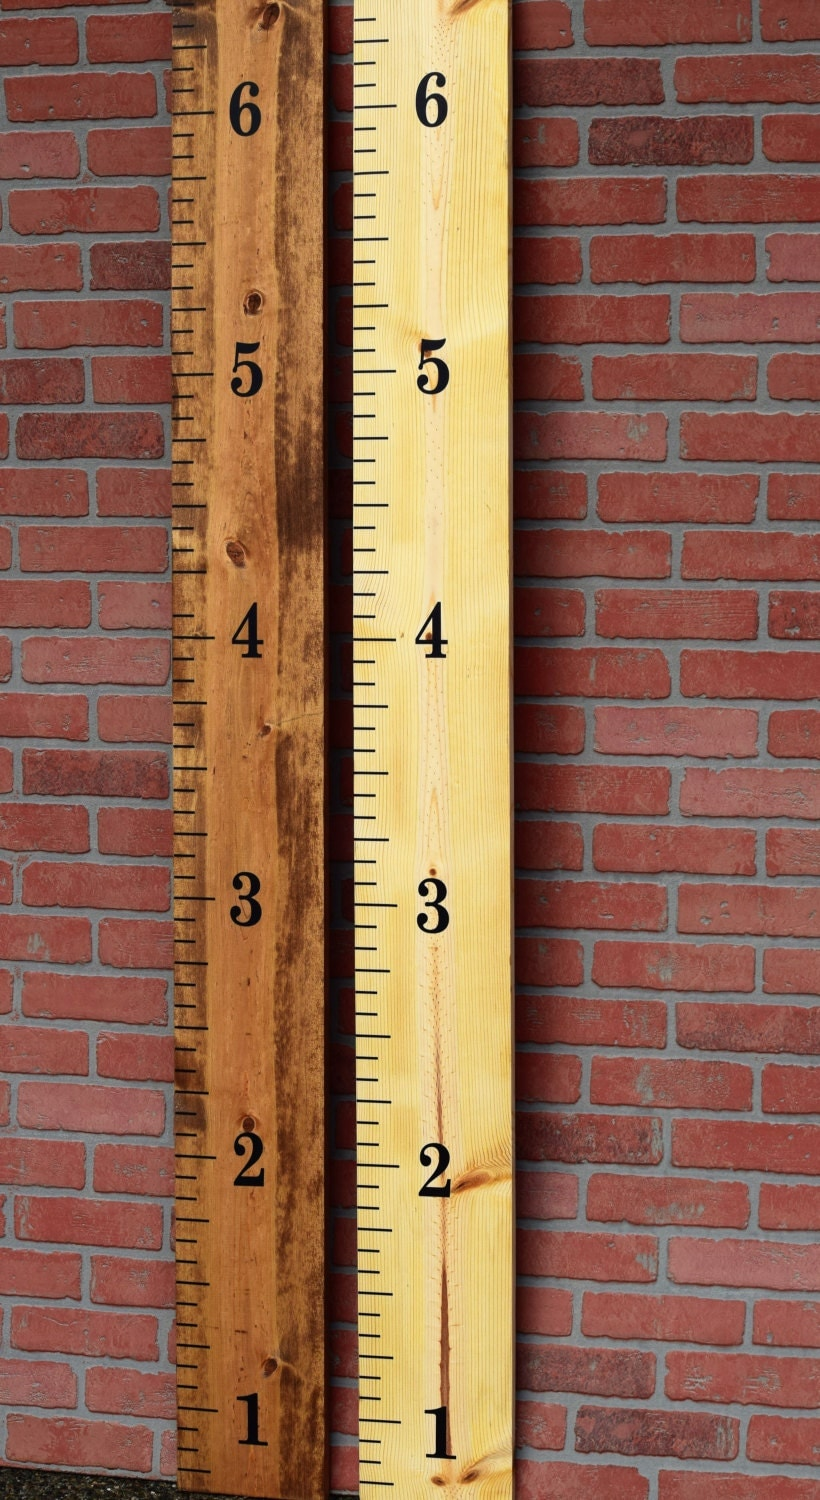 DIY Ruler Growth Chart Vinyl Decal Complete Kit Instructions - Custom vinyl decal application tools